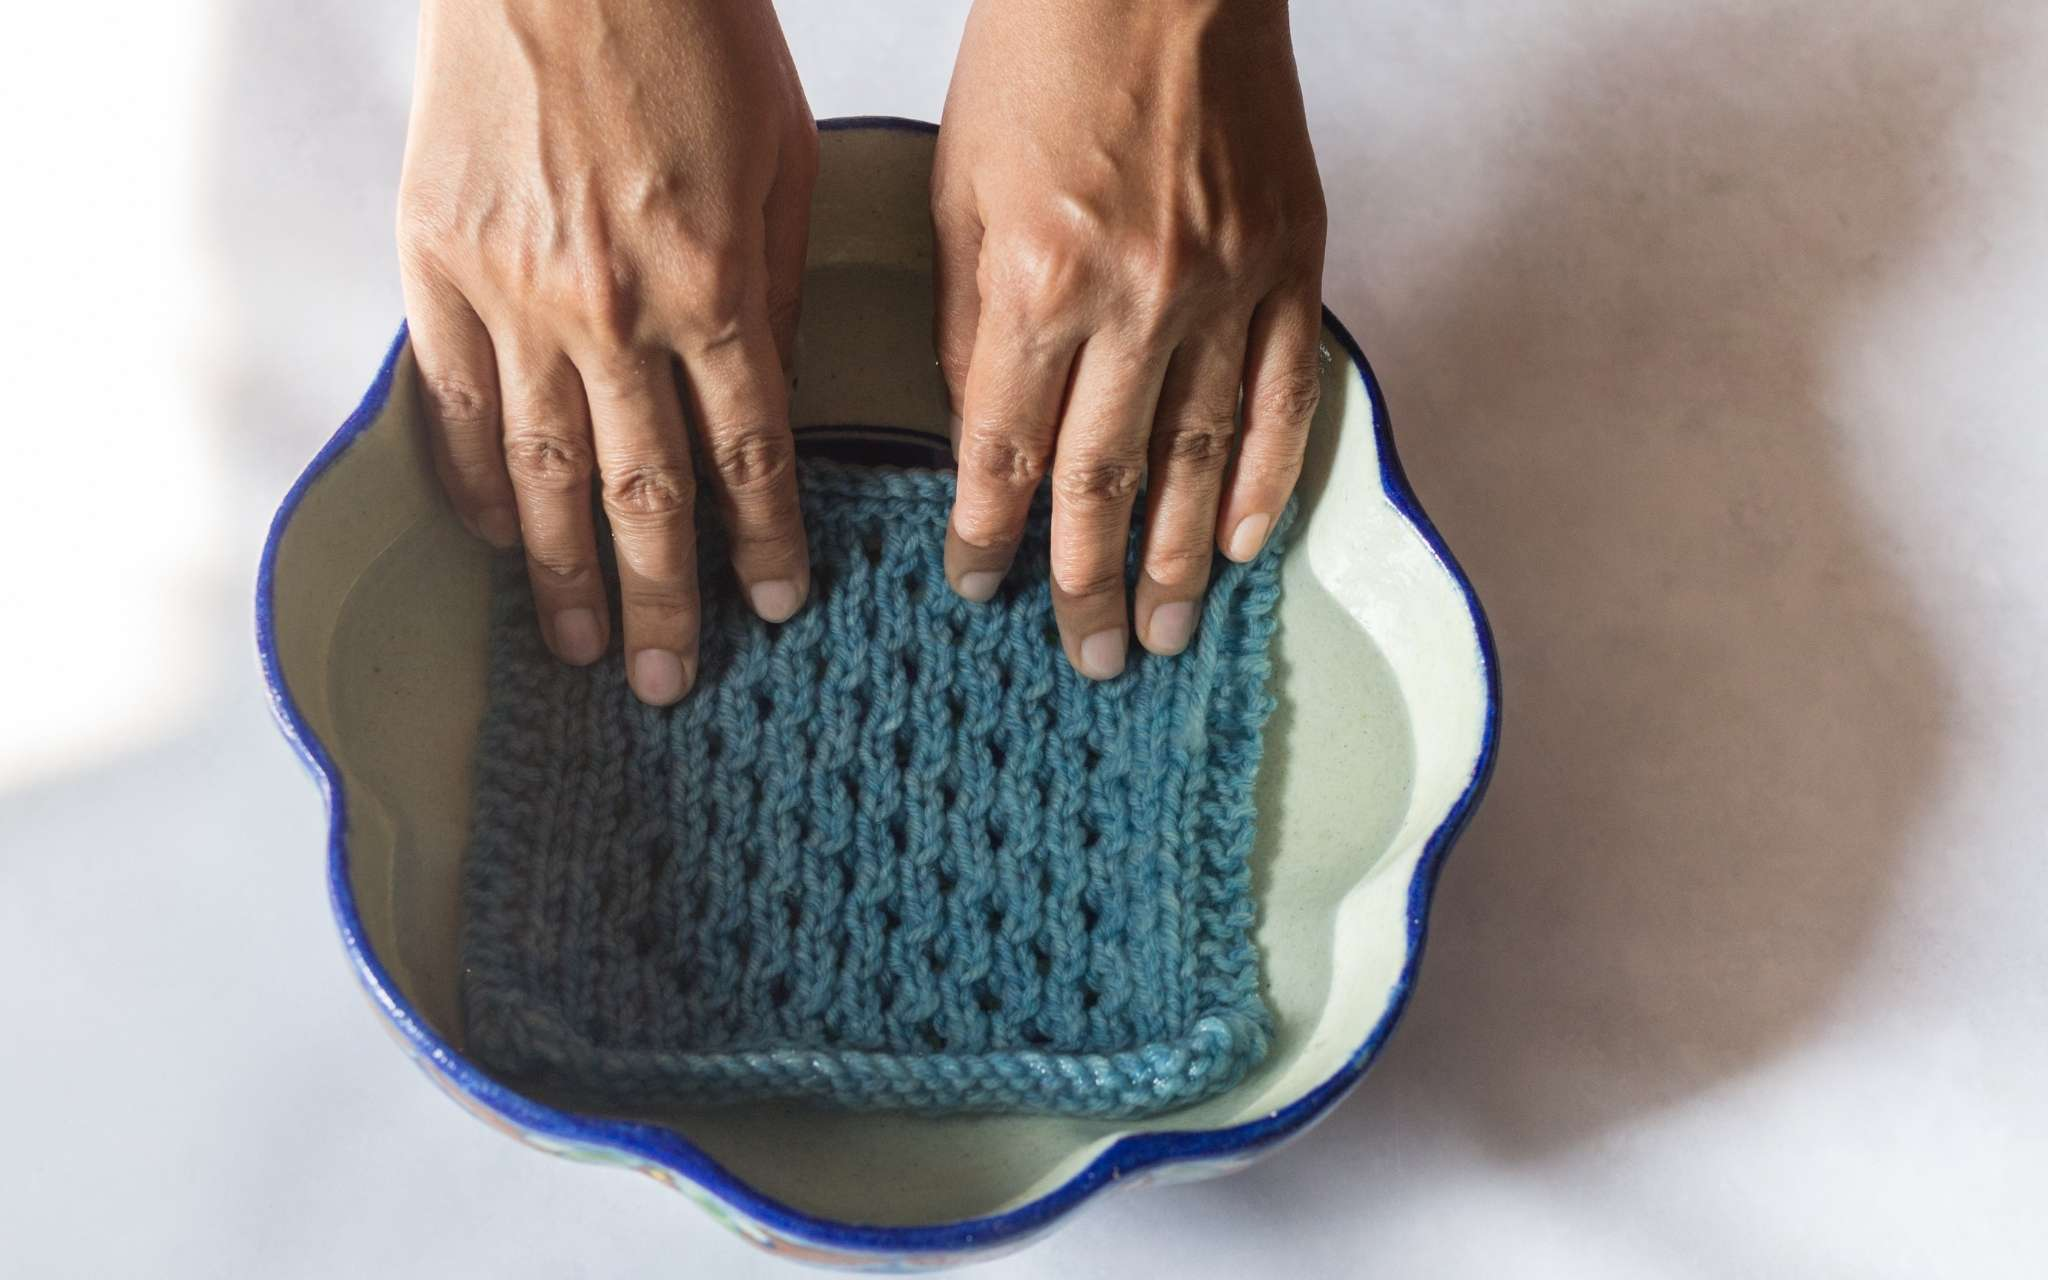 A swatch is being held during water in a small bowl with scalloped shaped edges.